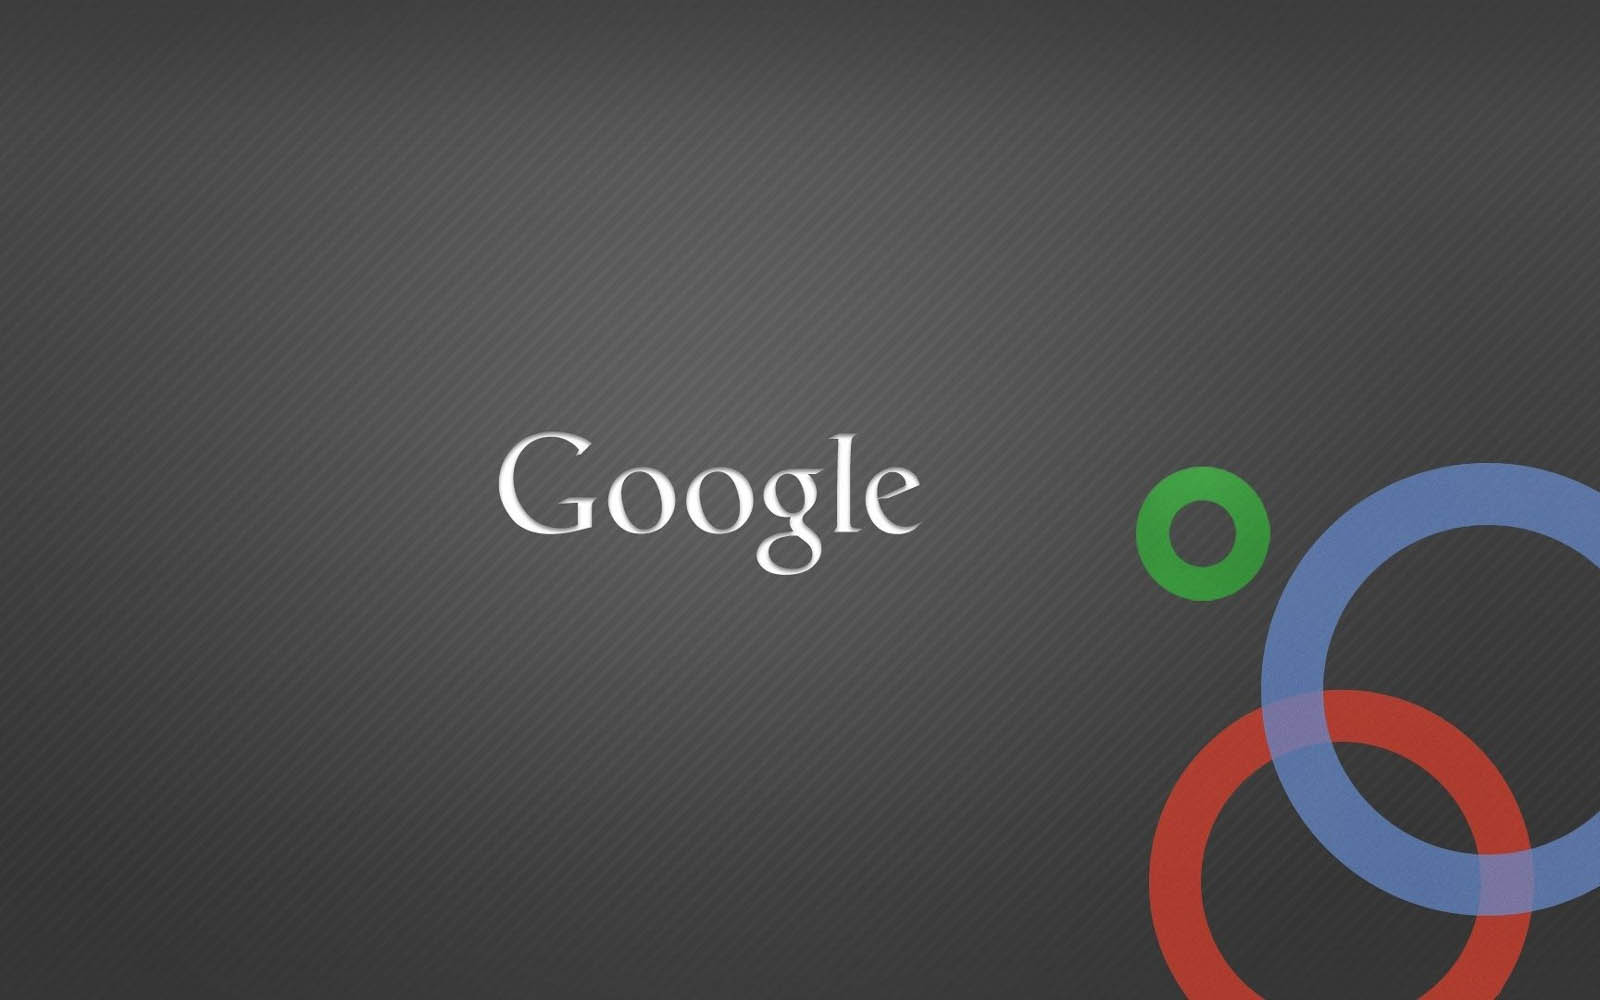 Google themes powerpoint - Tag Google Wallpapers Backgrounds Photos Images And Pictures For